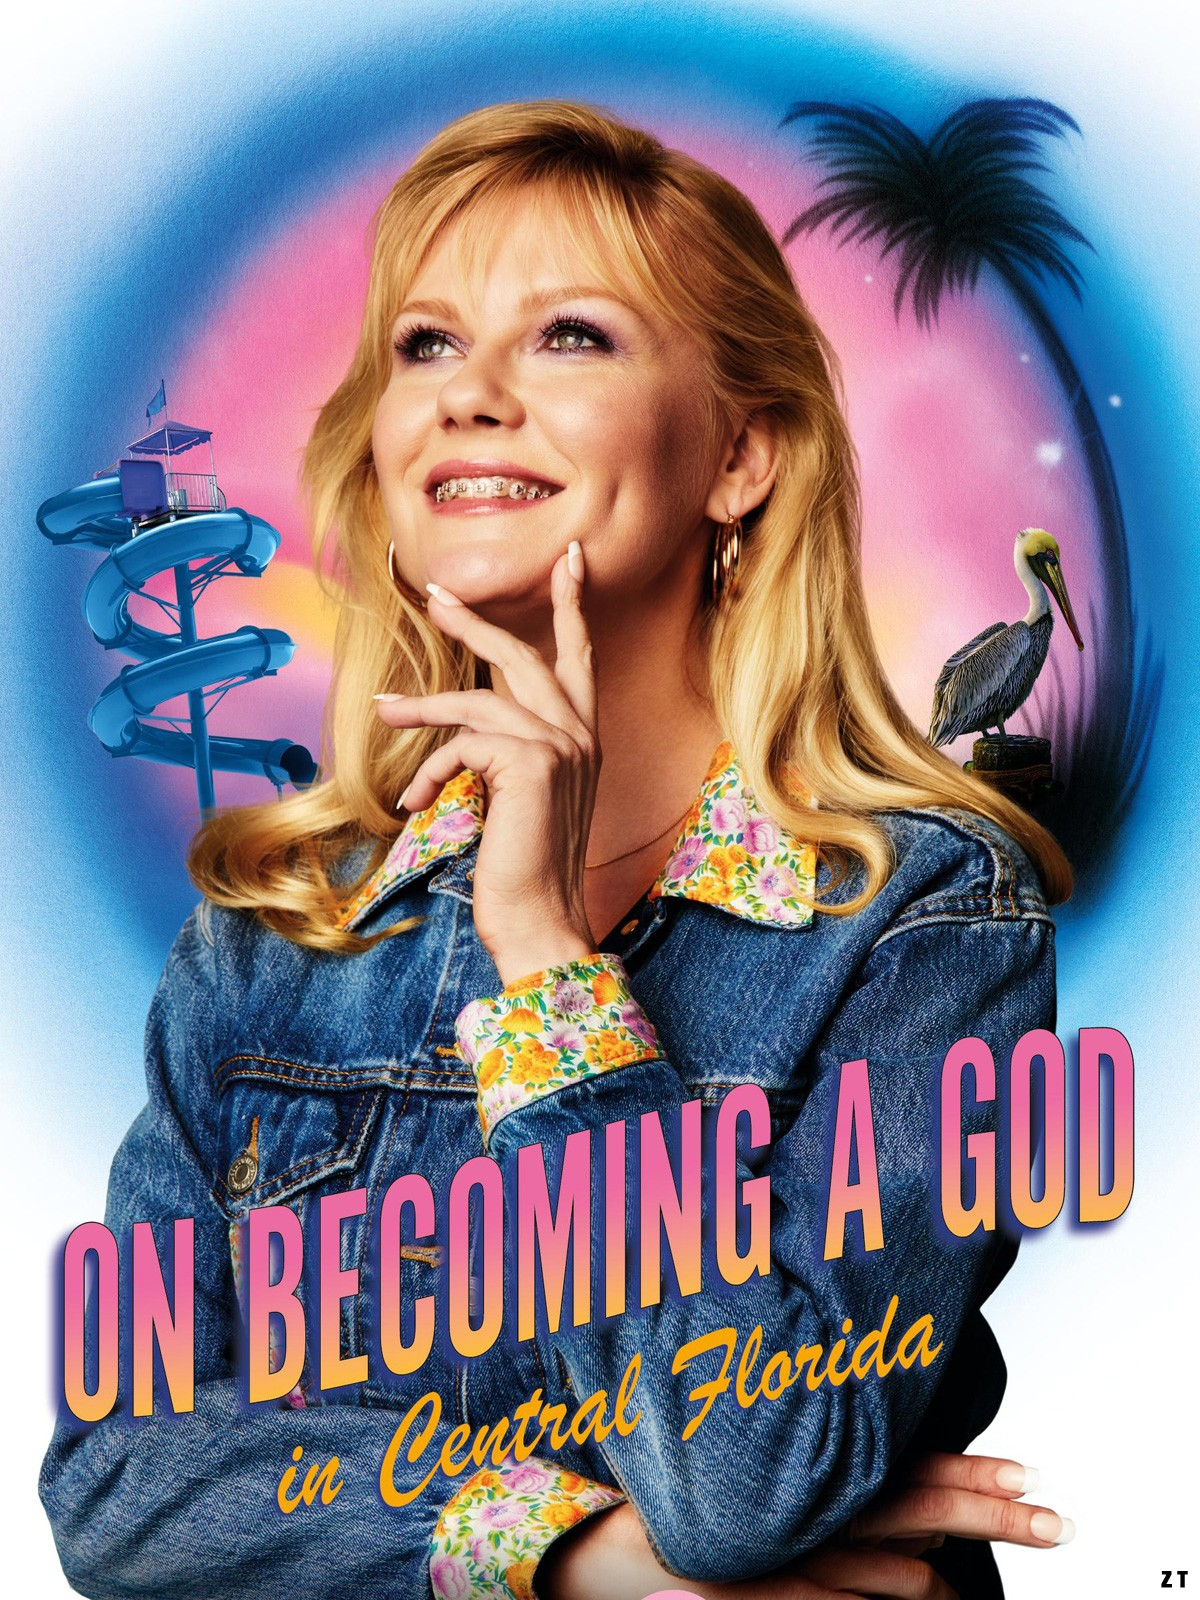 On Becoming A God In Central Florida – Saison 1 [Complete] [Streaming] [Telecharger]